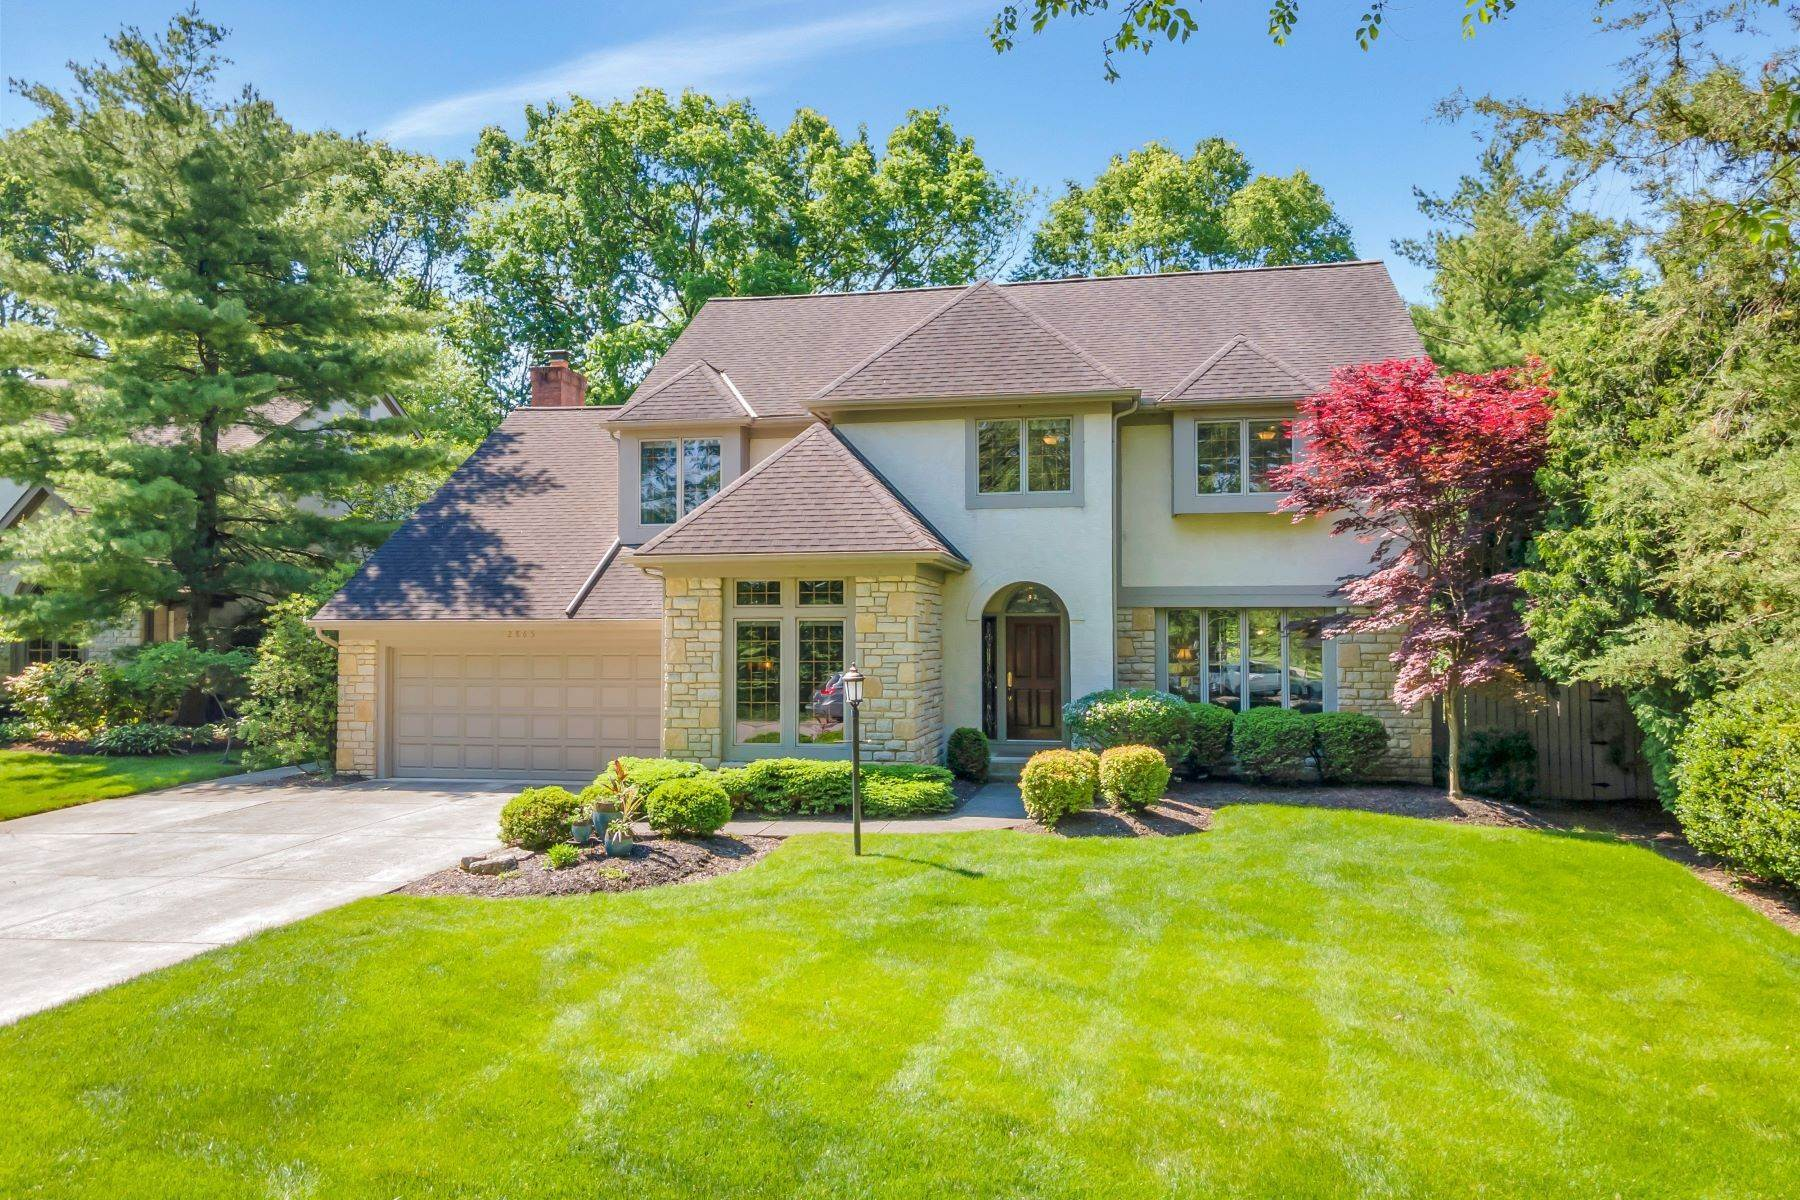 Single Family Homes for Sale at 2865 Wickliffe Road Upper Arlington, Ohio 43221 United States